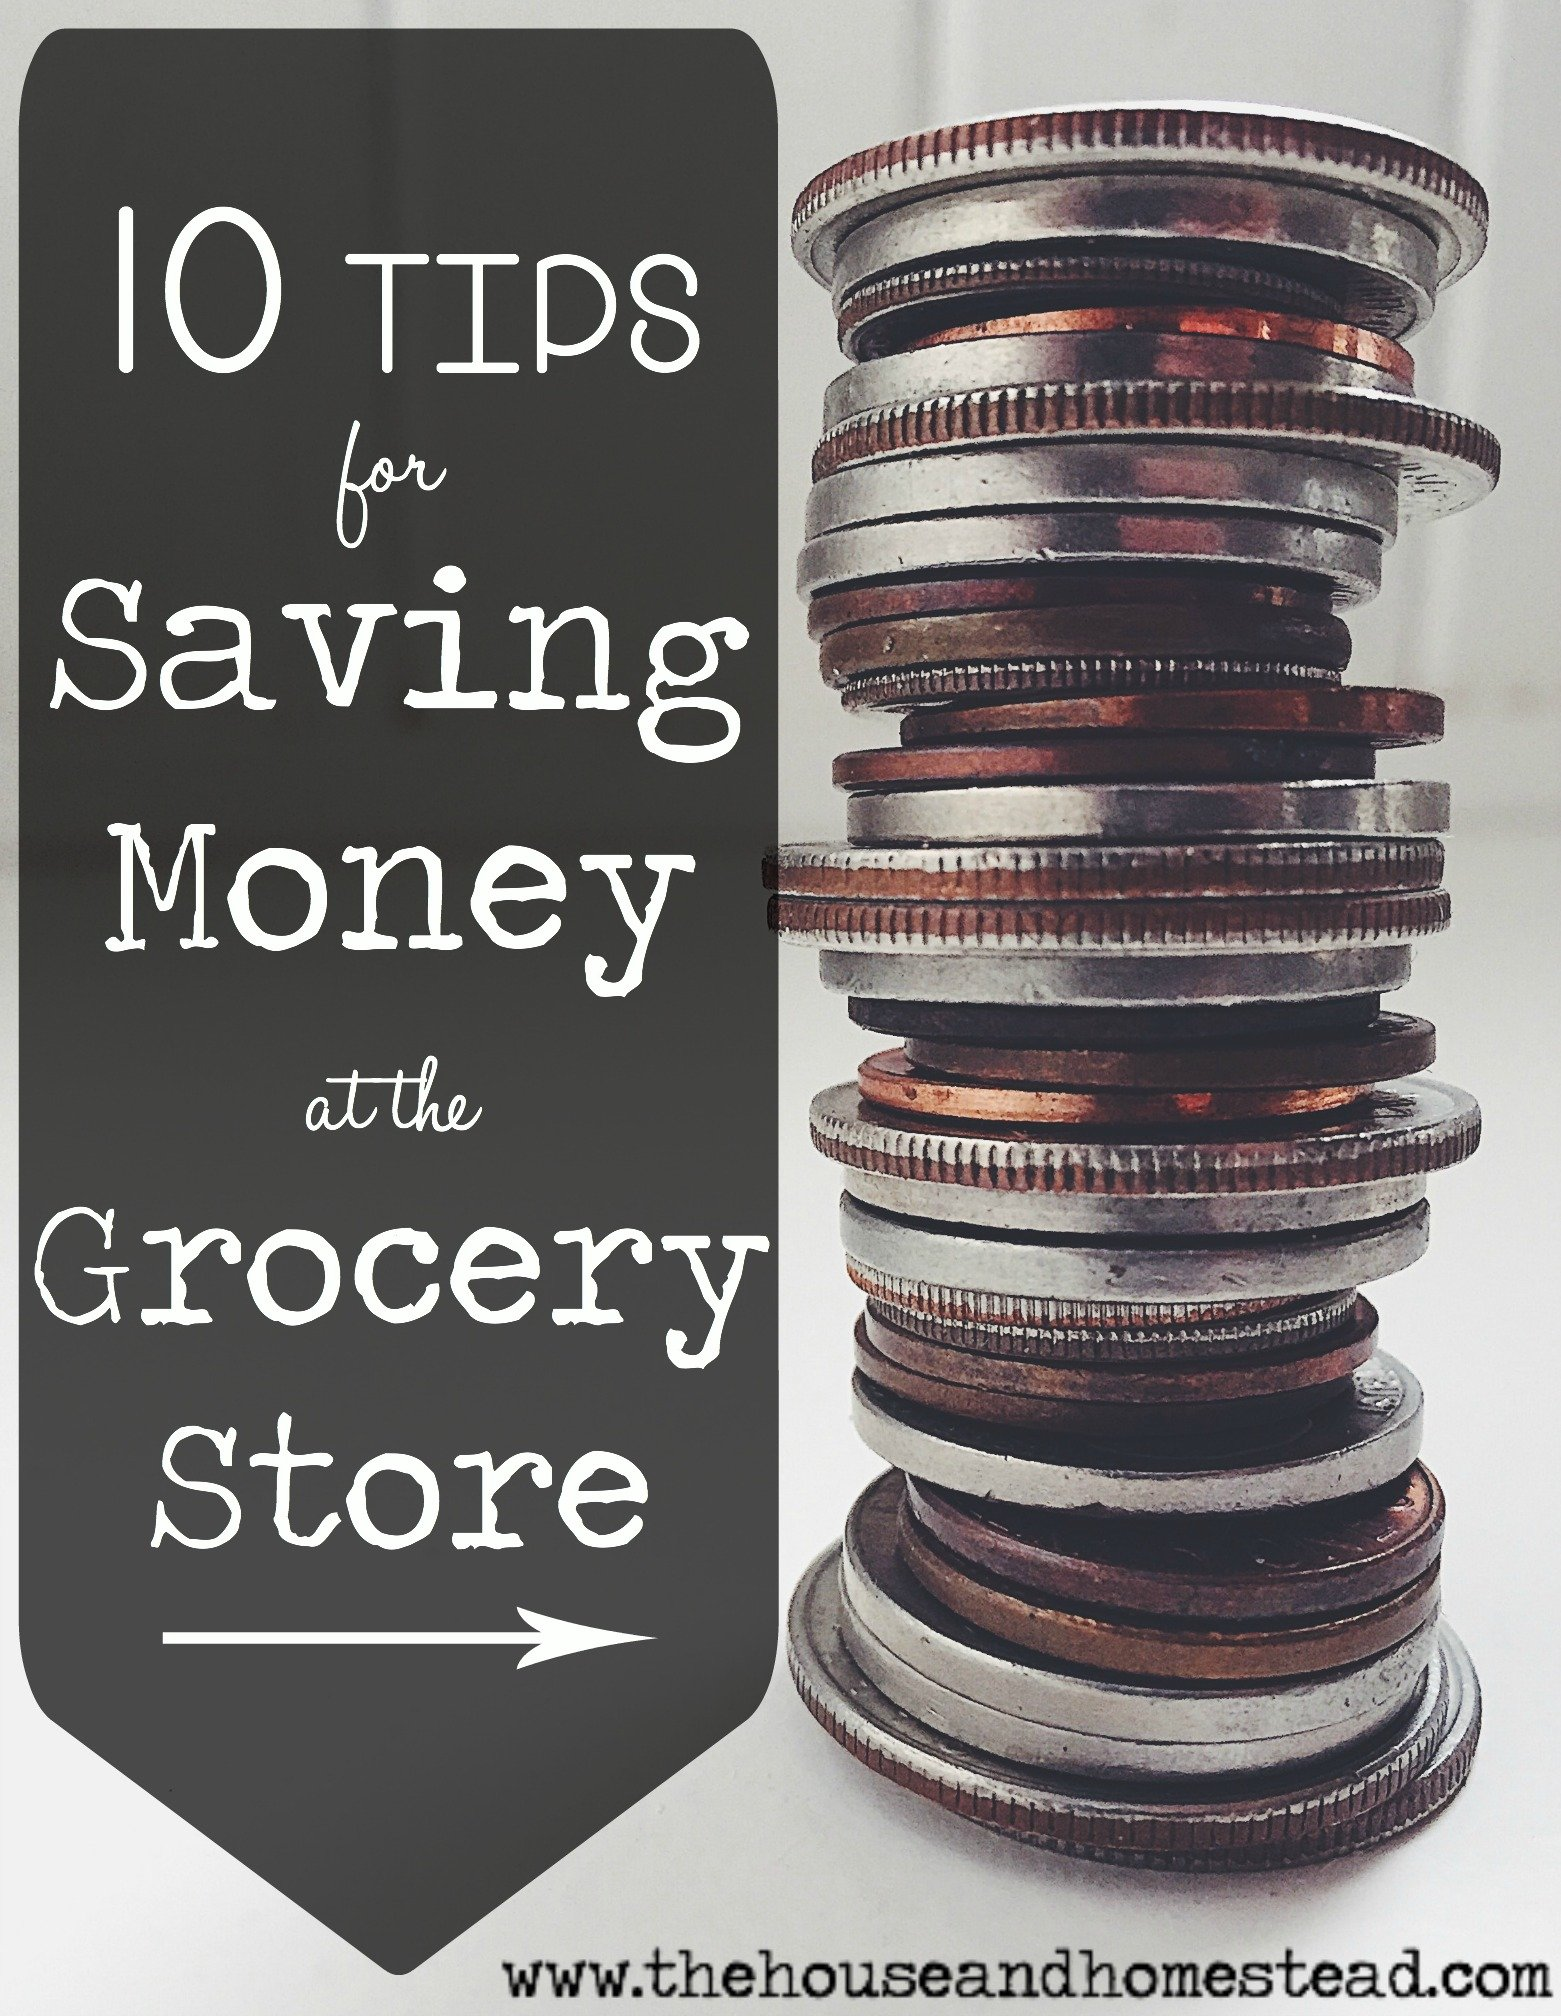 10 Tips for Saving Money at the Grocery Store | Your monthly grocery bill can make or break your budget. Spend less and save more with this list of simple ways to save money at the grocery store.